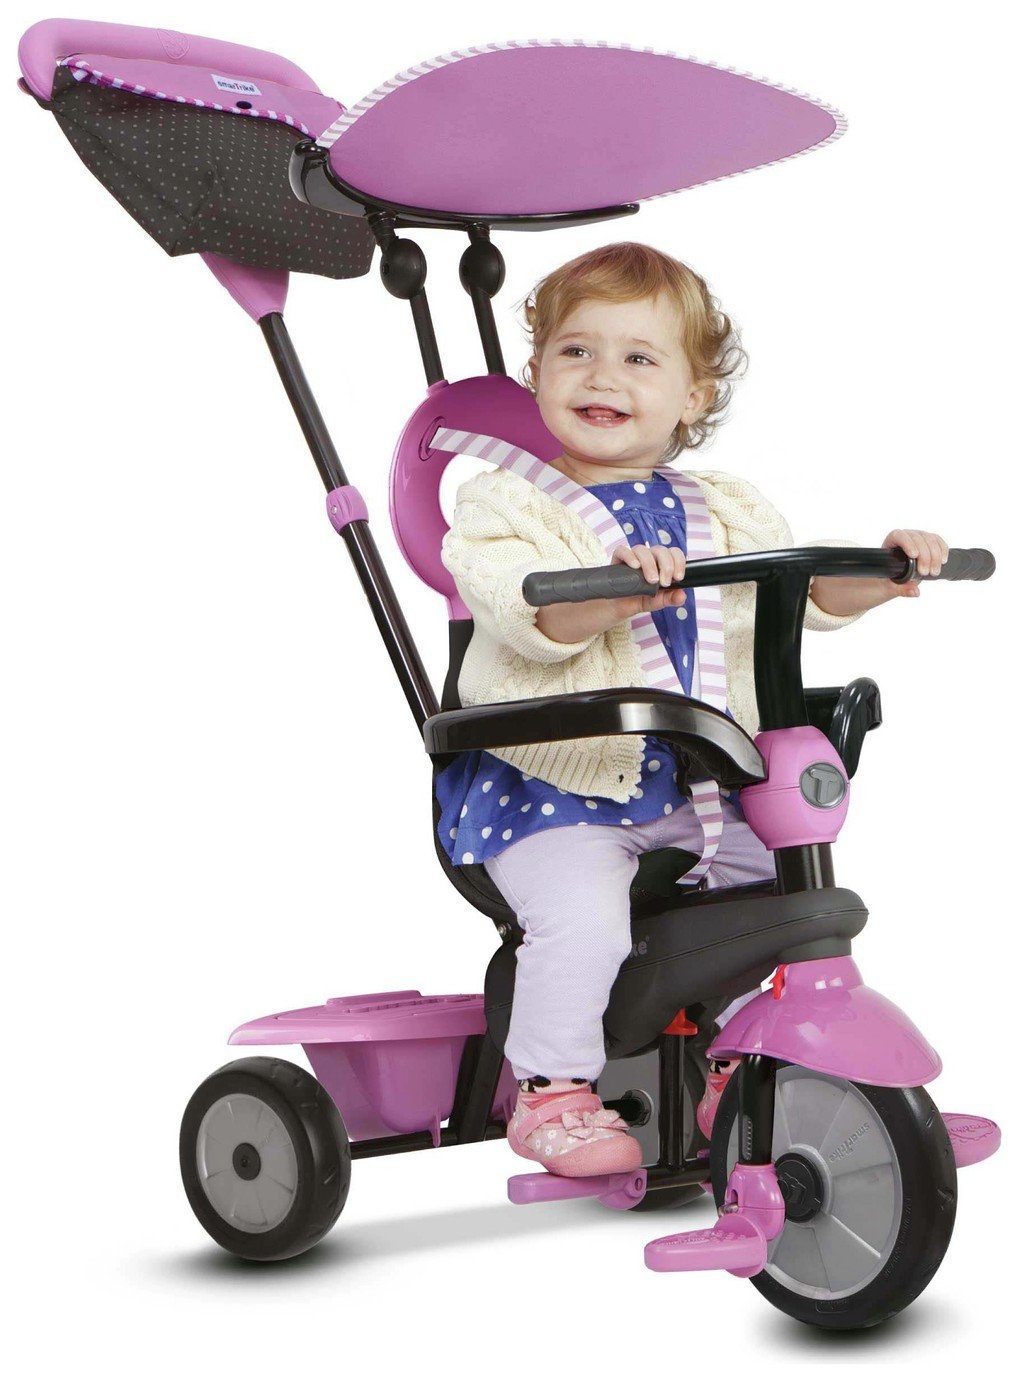 SmarTrike 4 In 1 Vanilla Tricycle   Pink